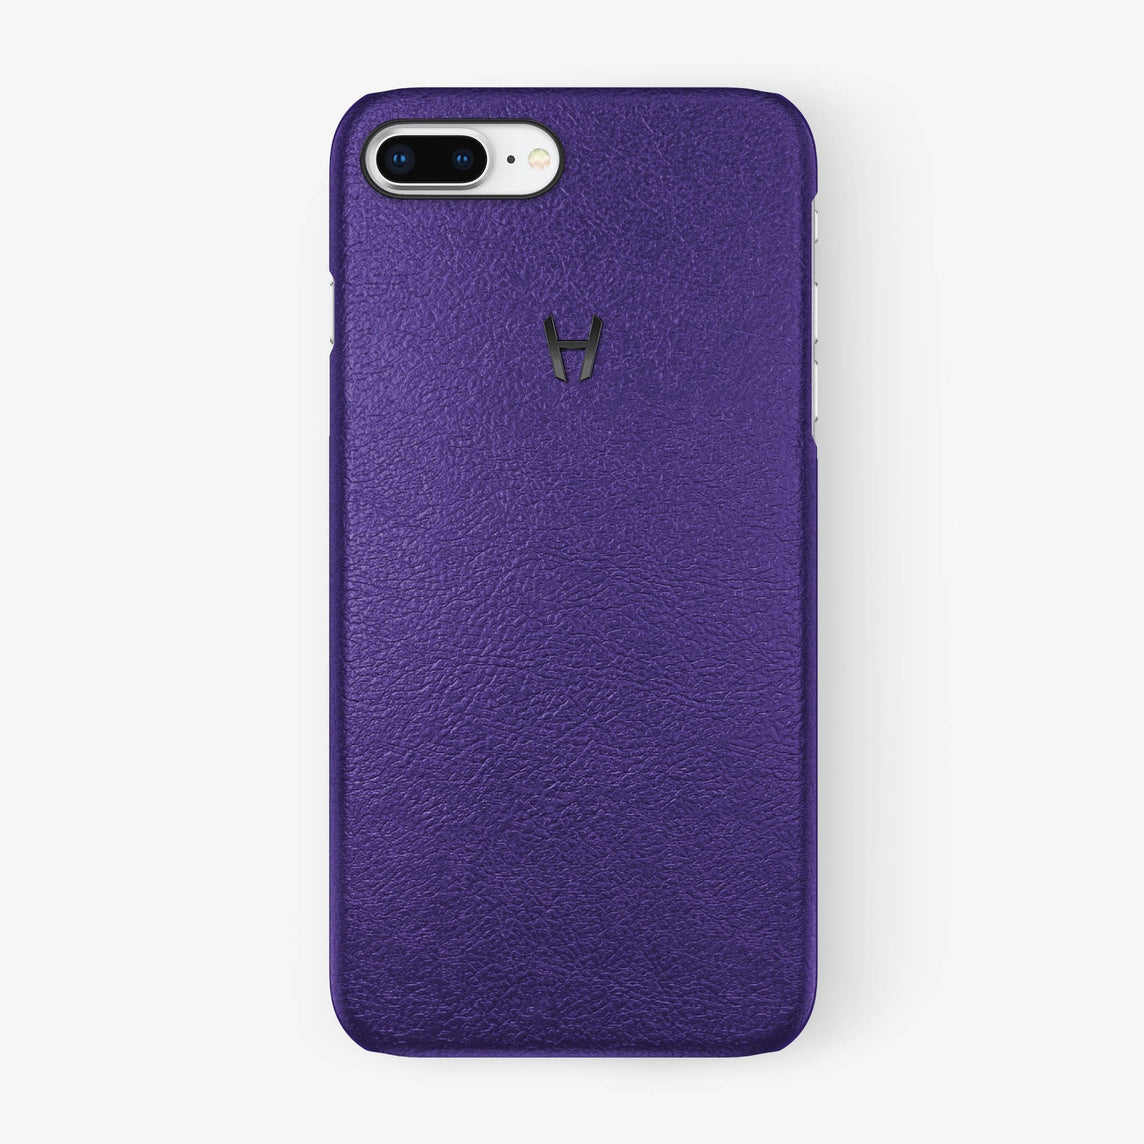 Purple Calfskin iPhone Case for iPhone 7/8 Plus finishing black - Hadoro Luxury Cases